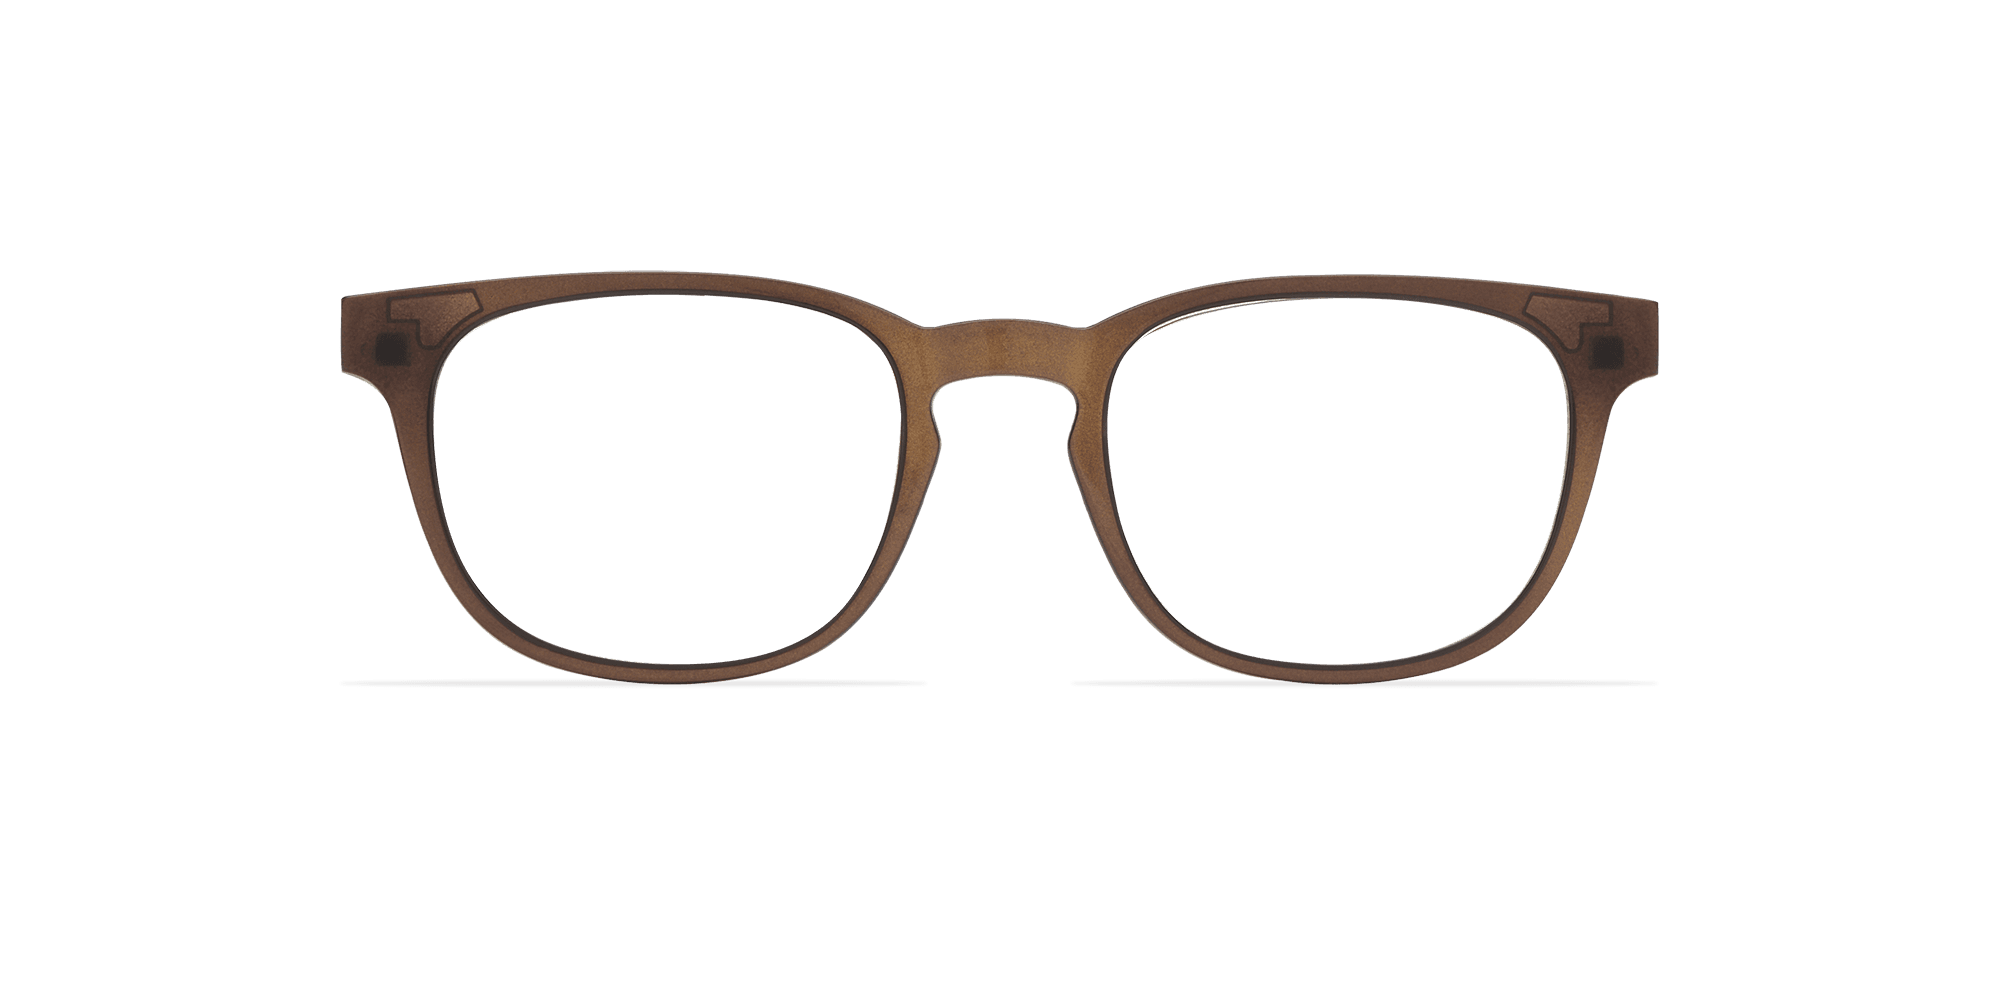 afflelou/france/products/smart_clip/clips_glasses/TMK33BBGY015120.png